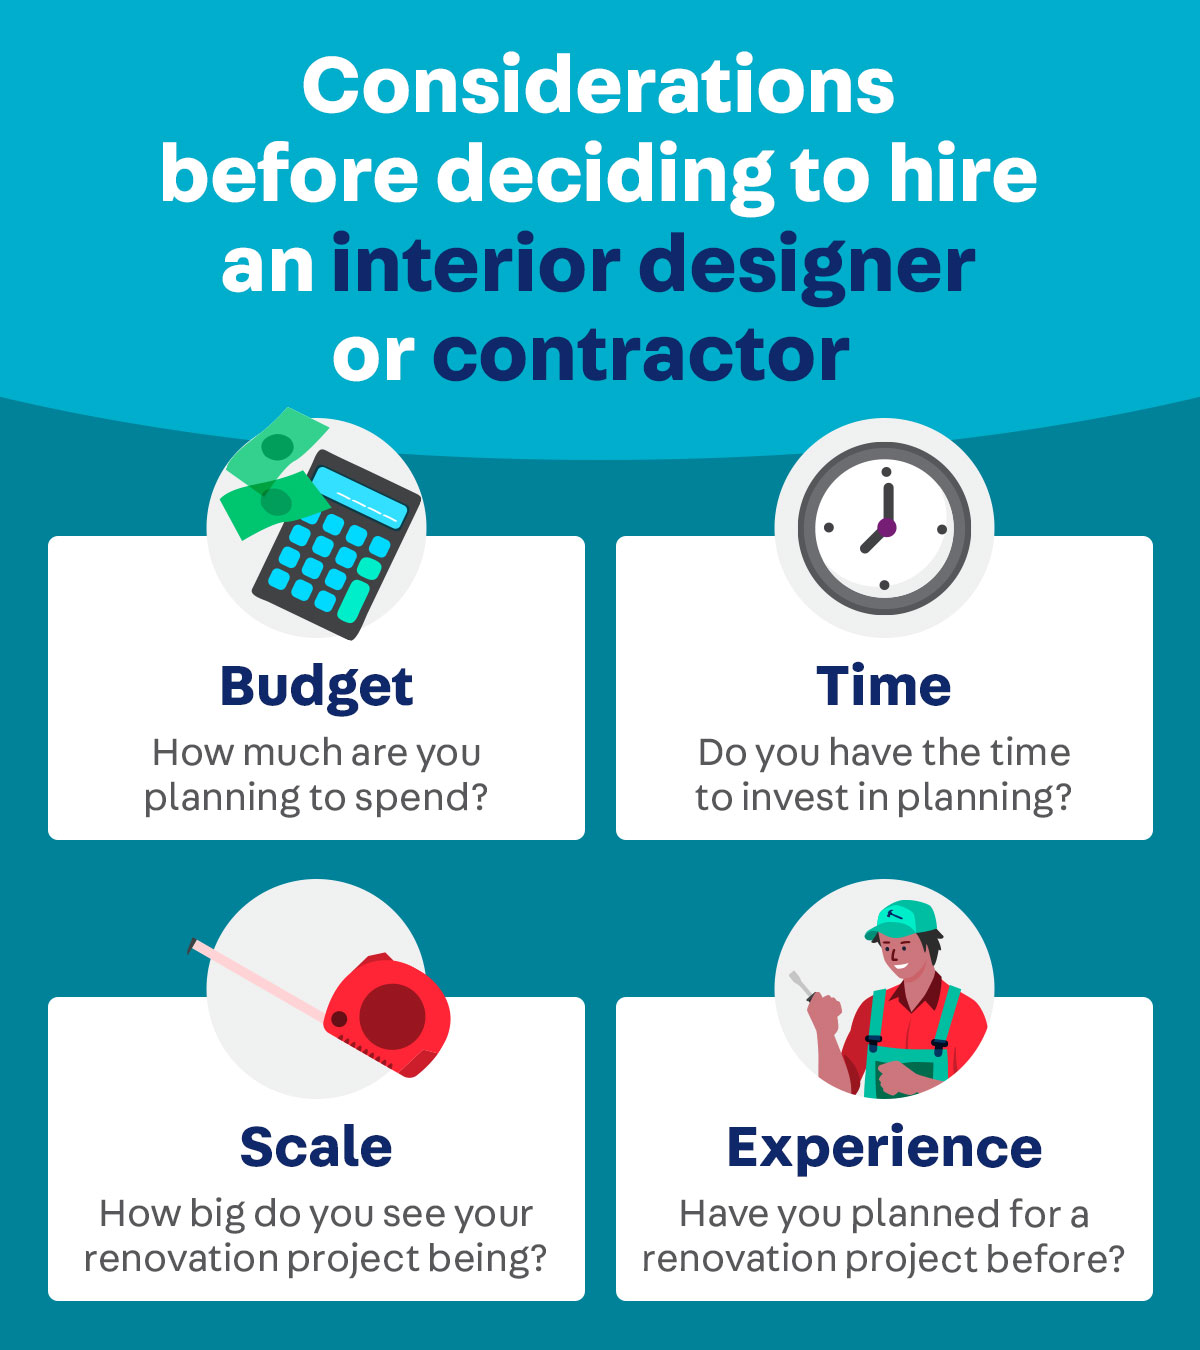 considerations-before-hiring-interior-designing-or-contractor-Carousell